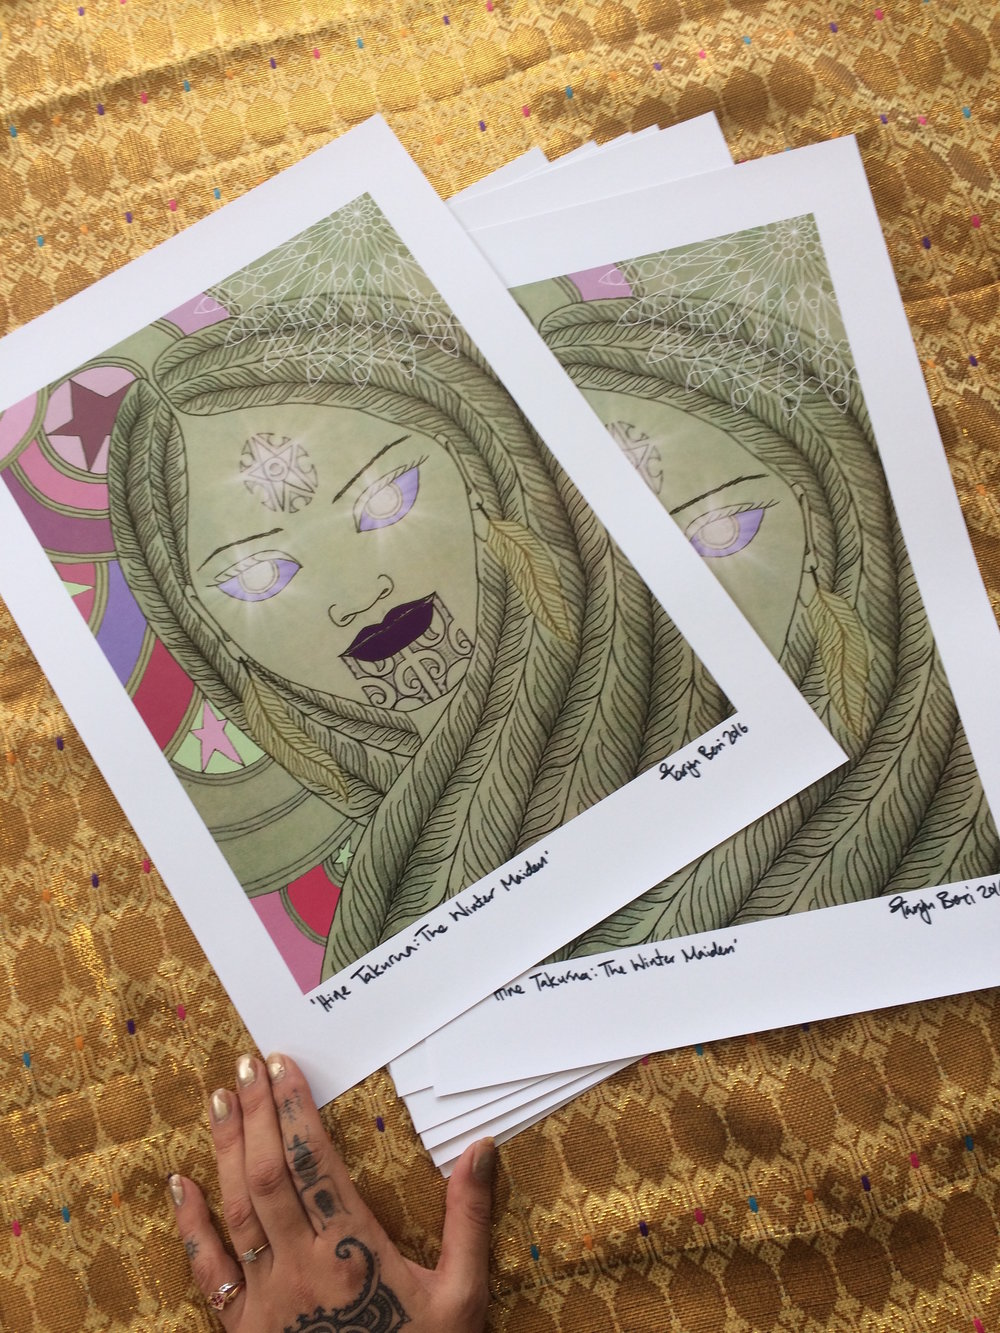 A3 size art prints ready for you to frame.